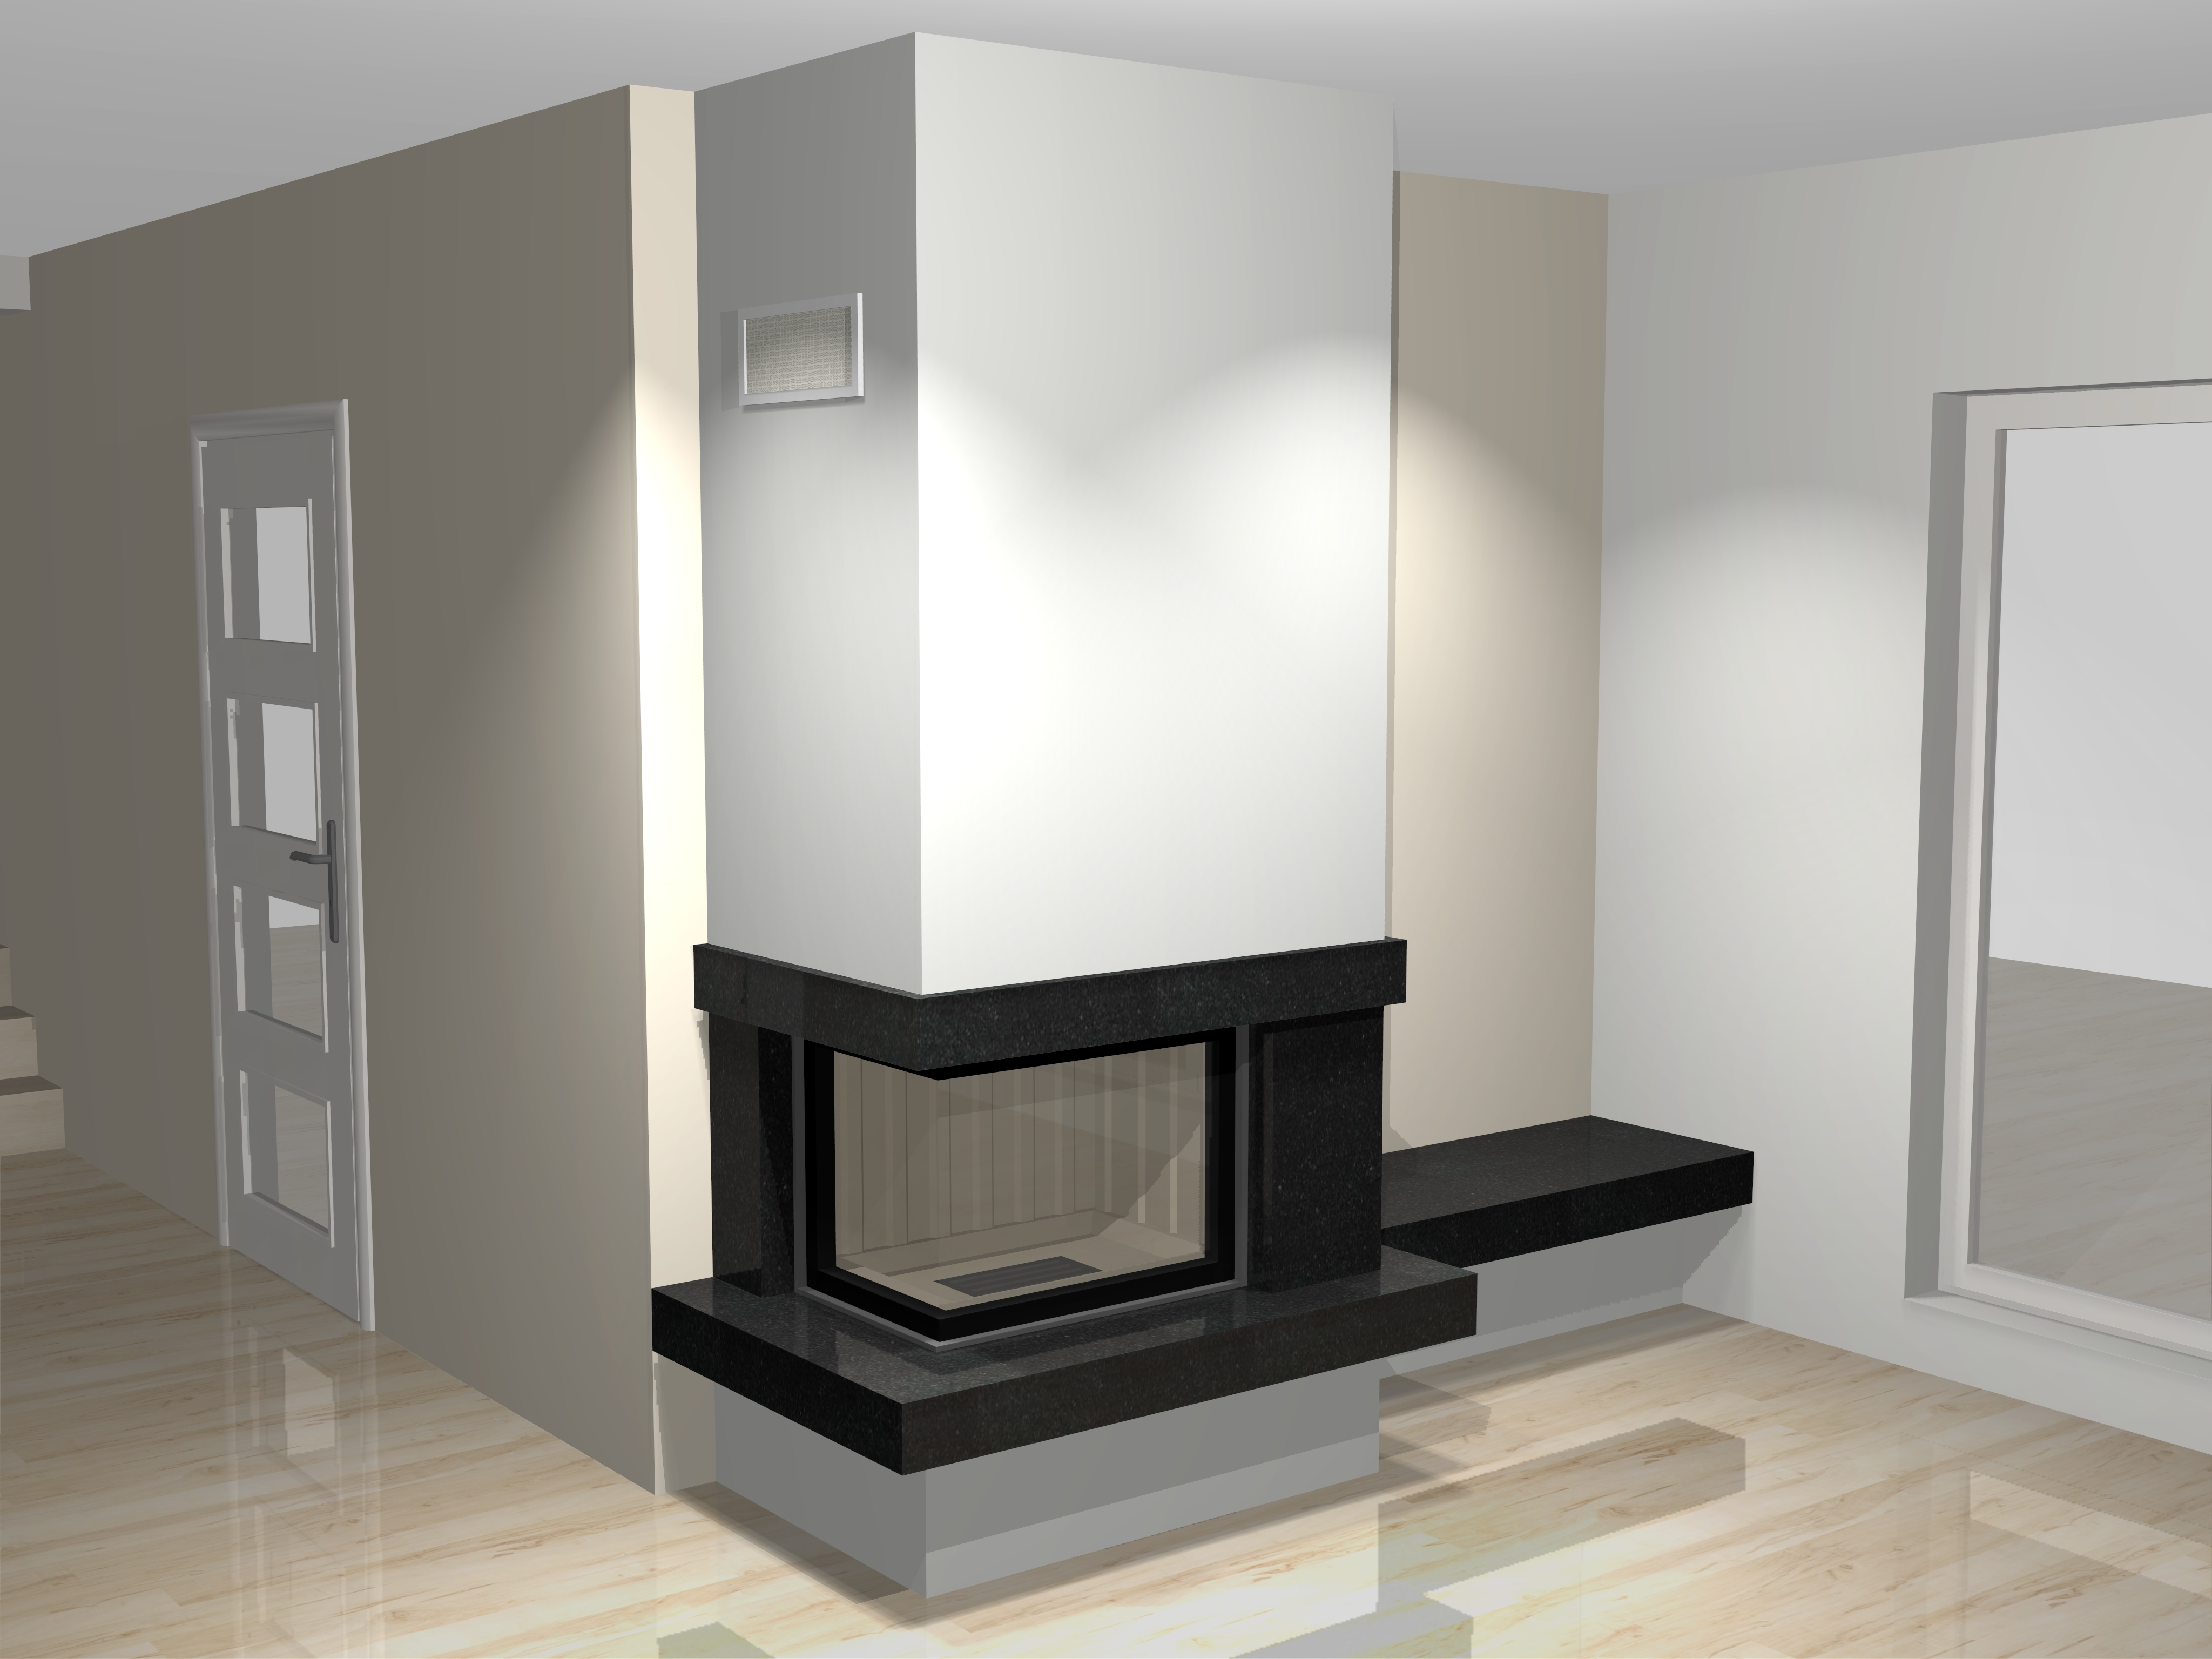 eckkamin modern a 28 2 mit spartherm mit montage www. Black Bedroom Furniture Sets. Home Design Ideas